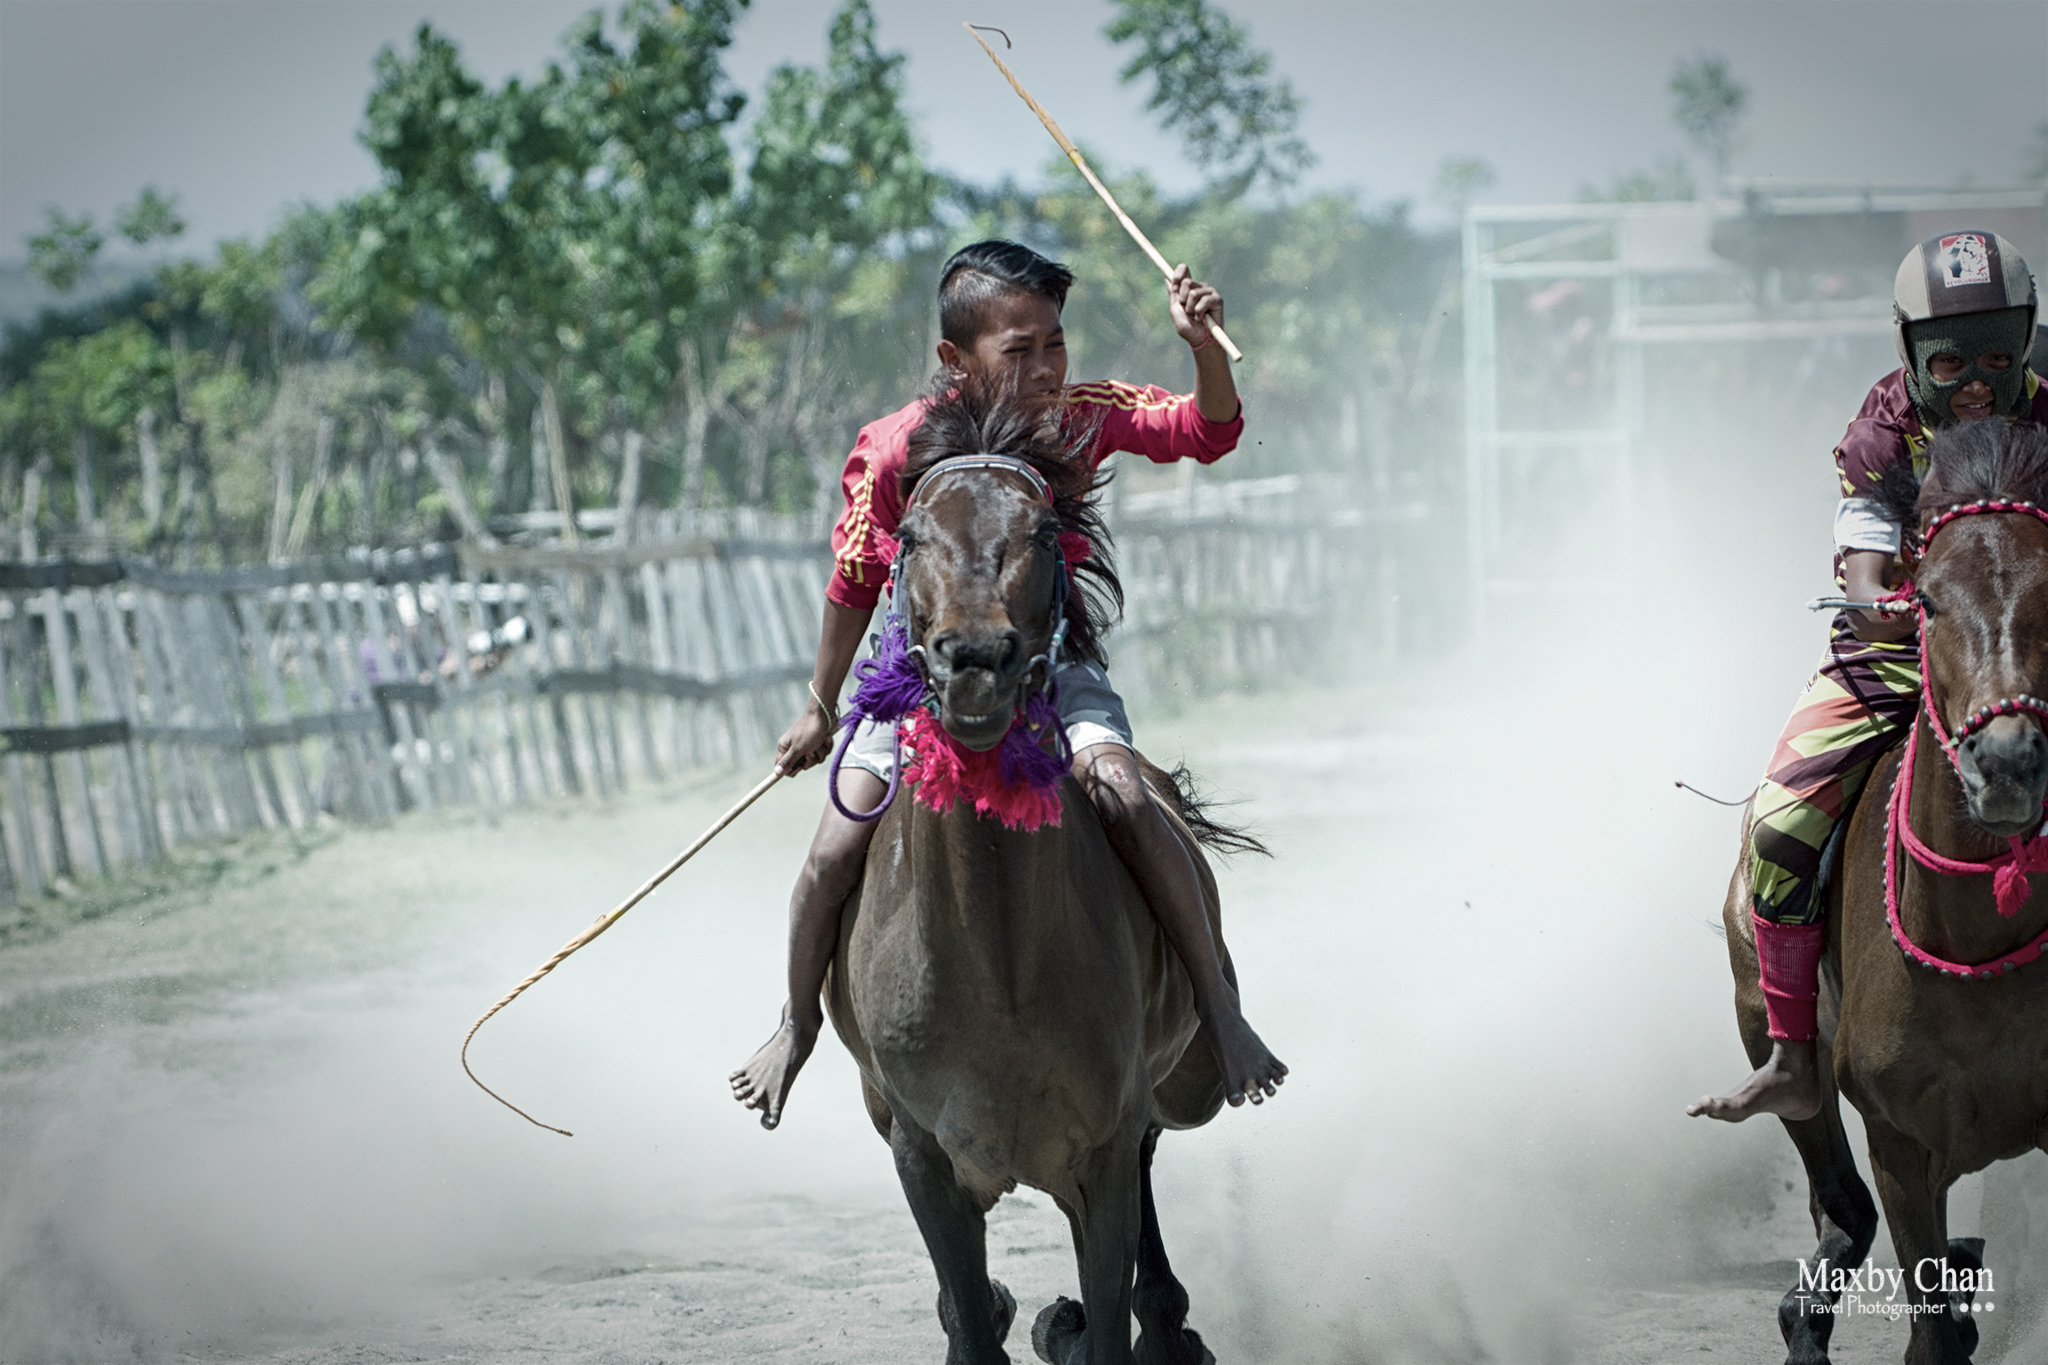 The jockeys were equipped with sticks to encourage their horses to run faster.